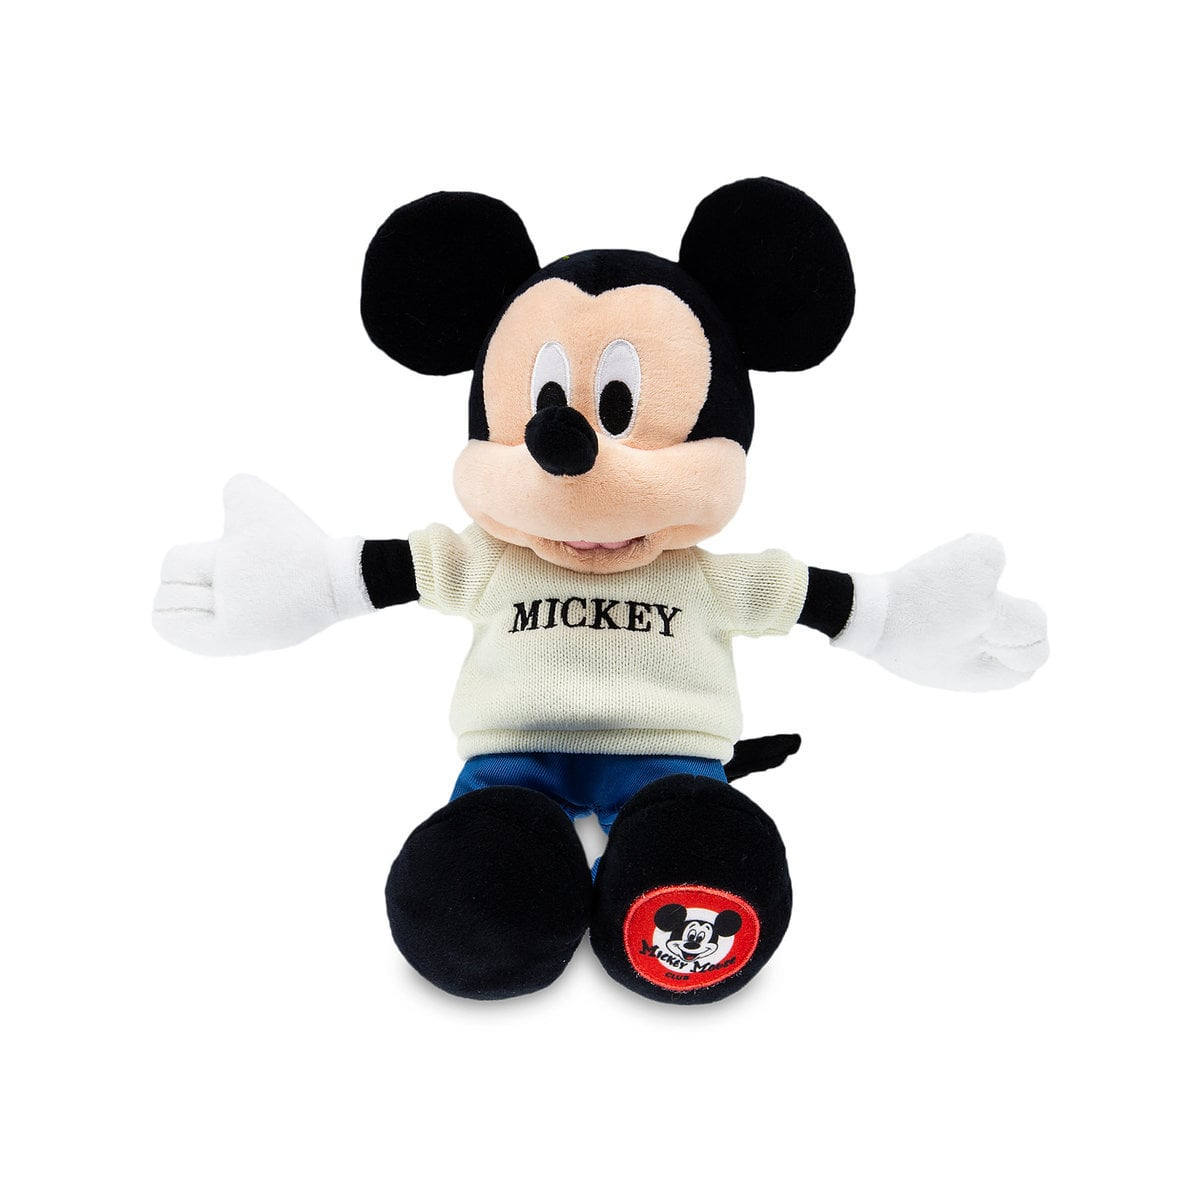 Super cute Mickey Mouse plush wearing a Mickey sweater | Top 25 Disney Gift Ideas for Toddlers featured by top US Disney blogger, Marcie and the Mouse